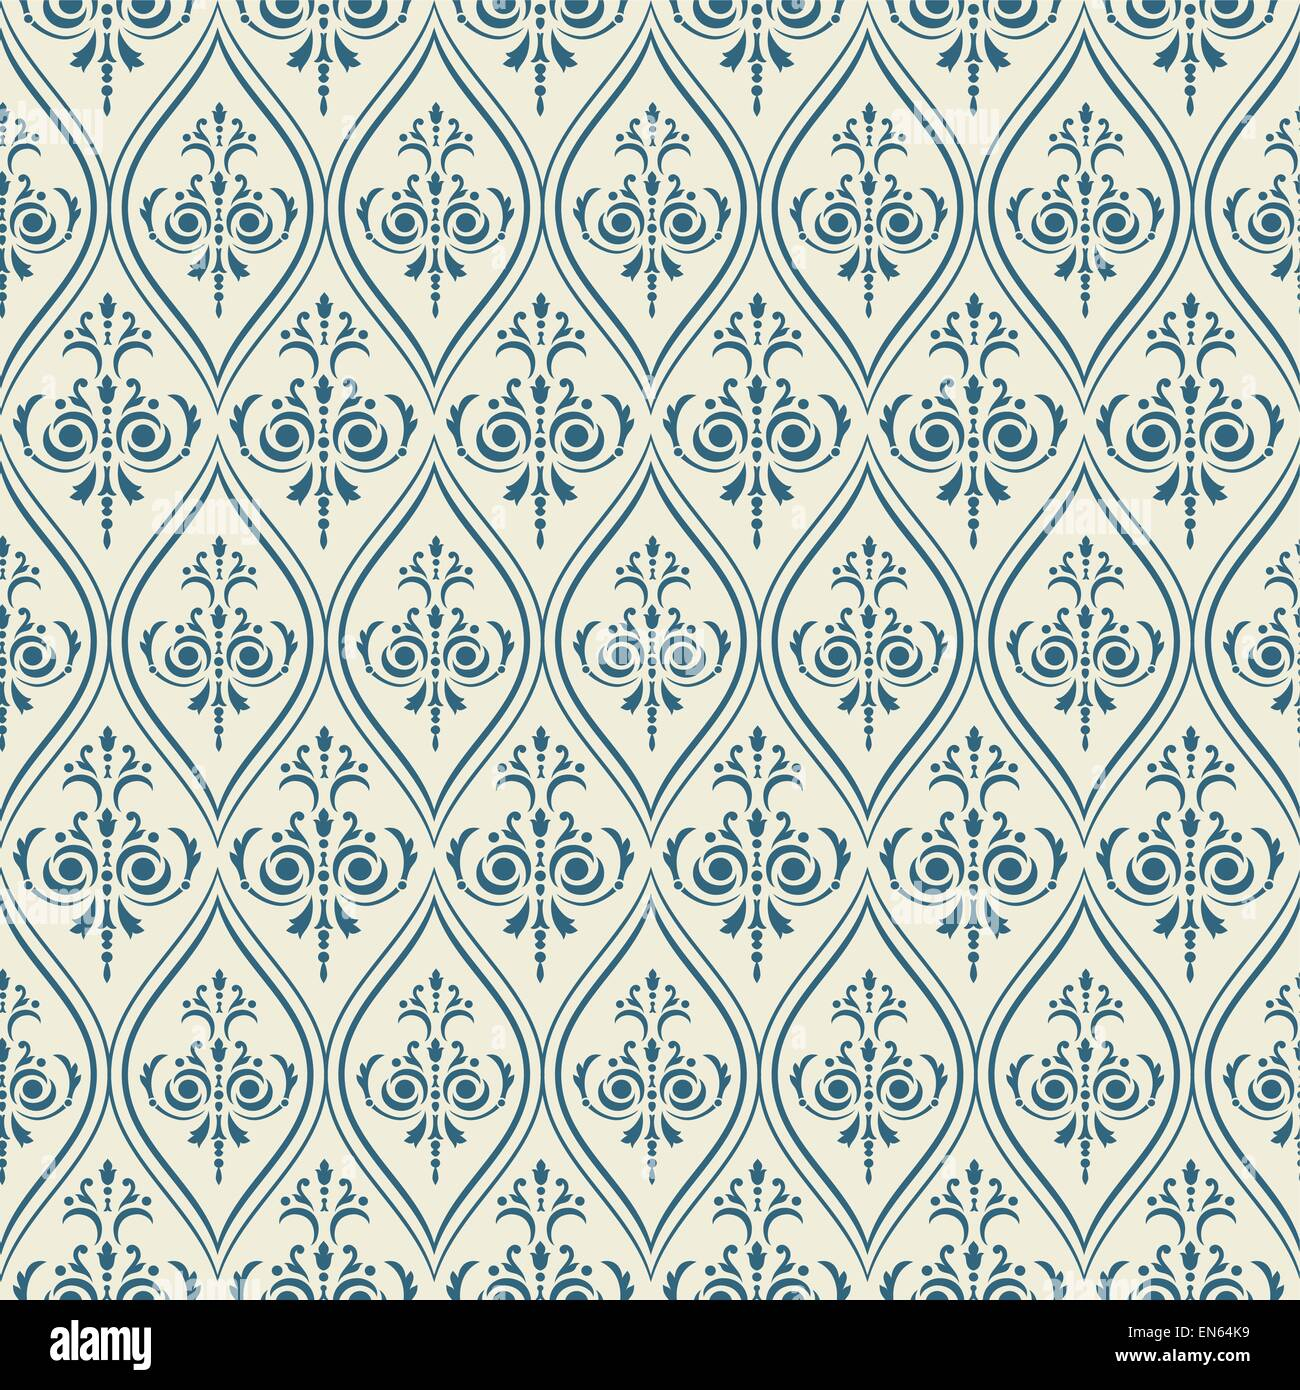 damask pattern seamless vintage background vector